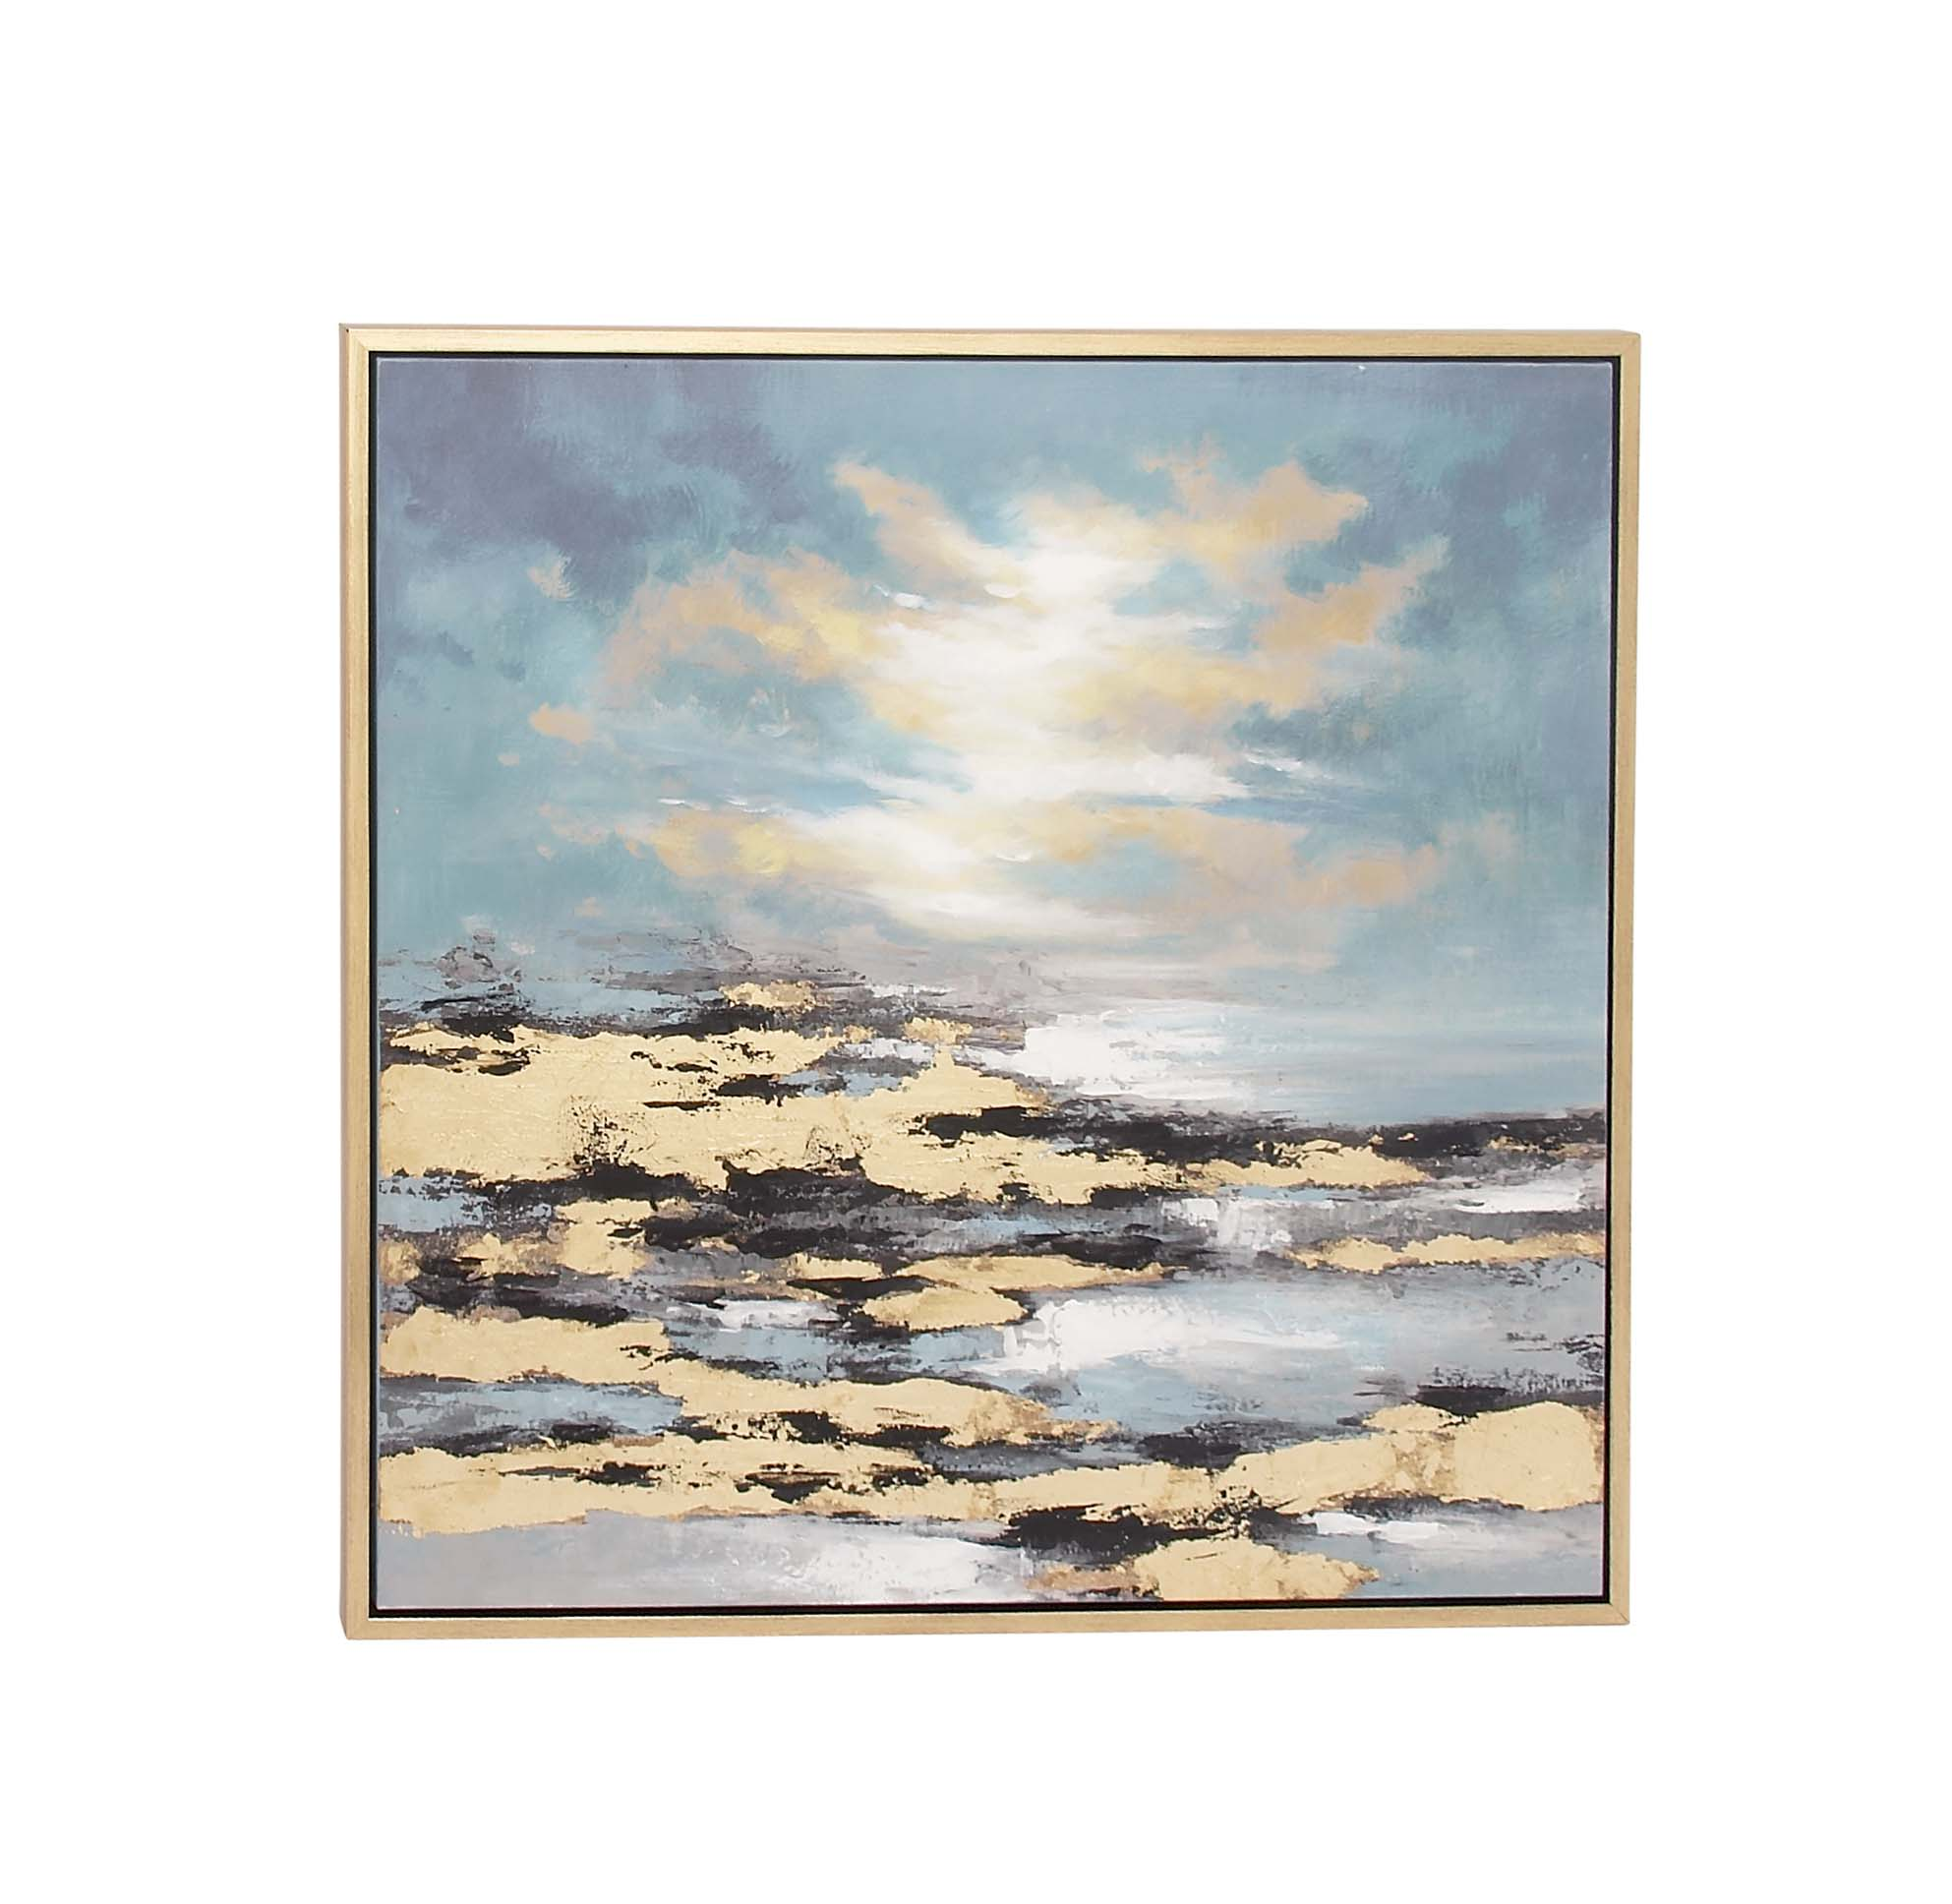 Decmode Contemporary 39 Inch Square Wooden Framed Sunset Canvas Art With Polystone... by DecMode